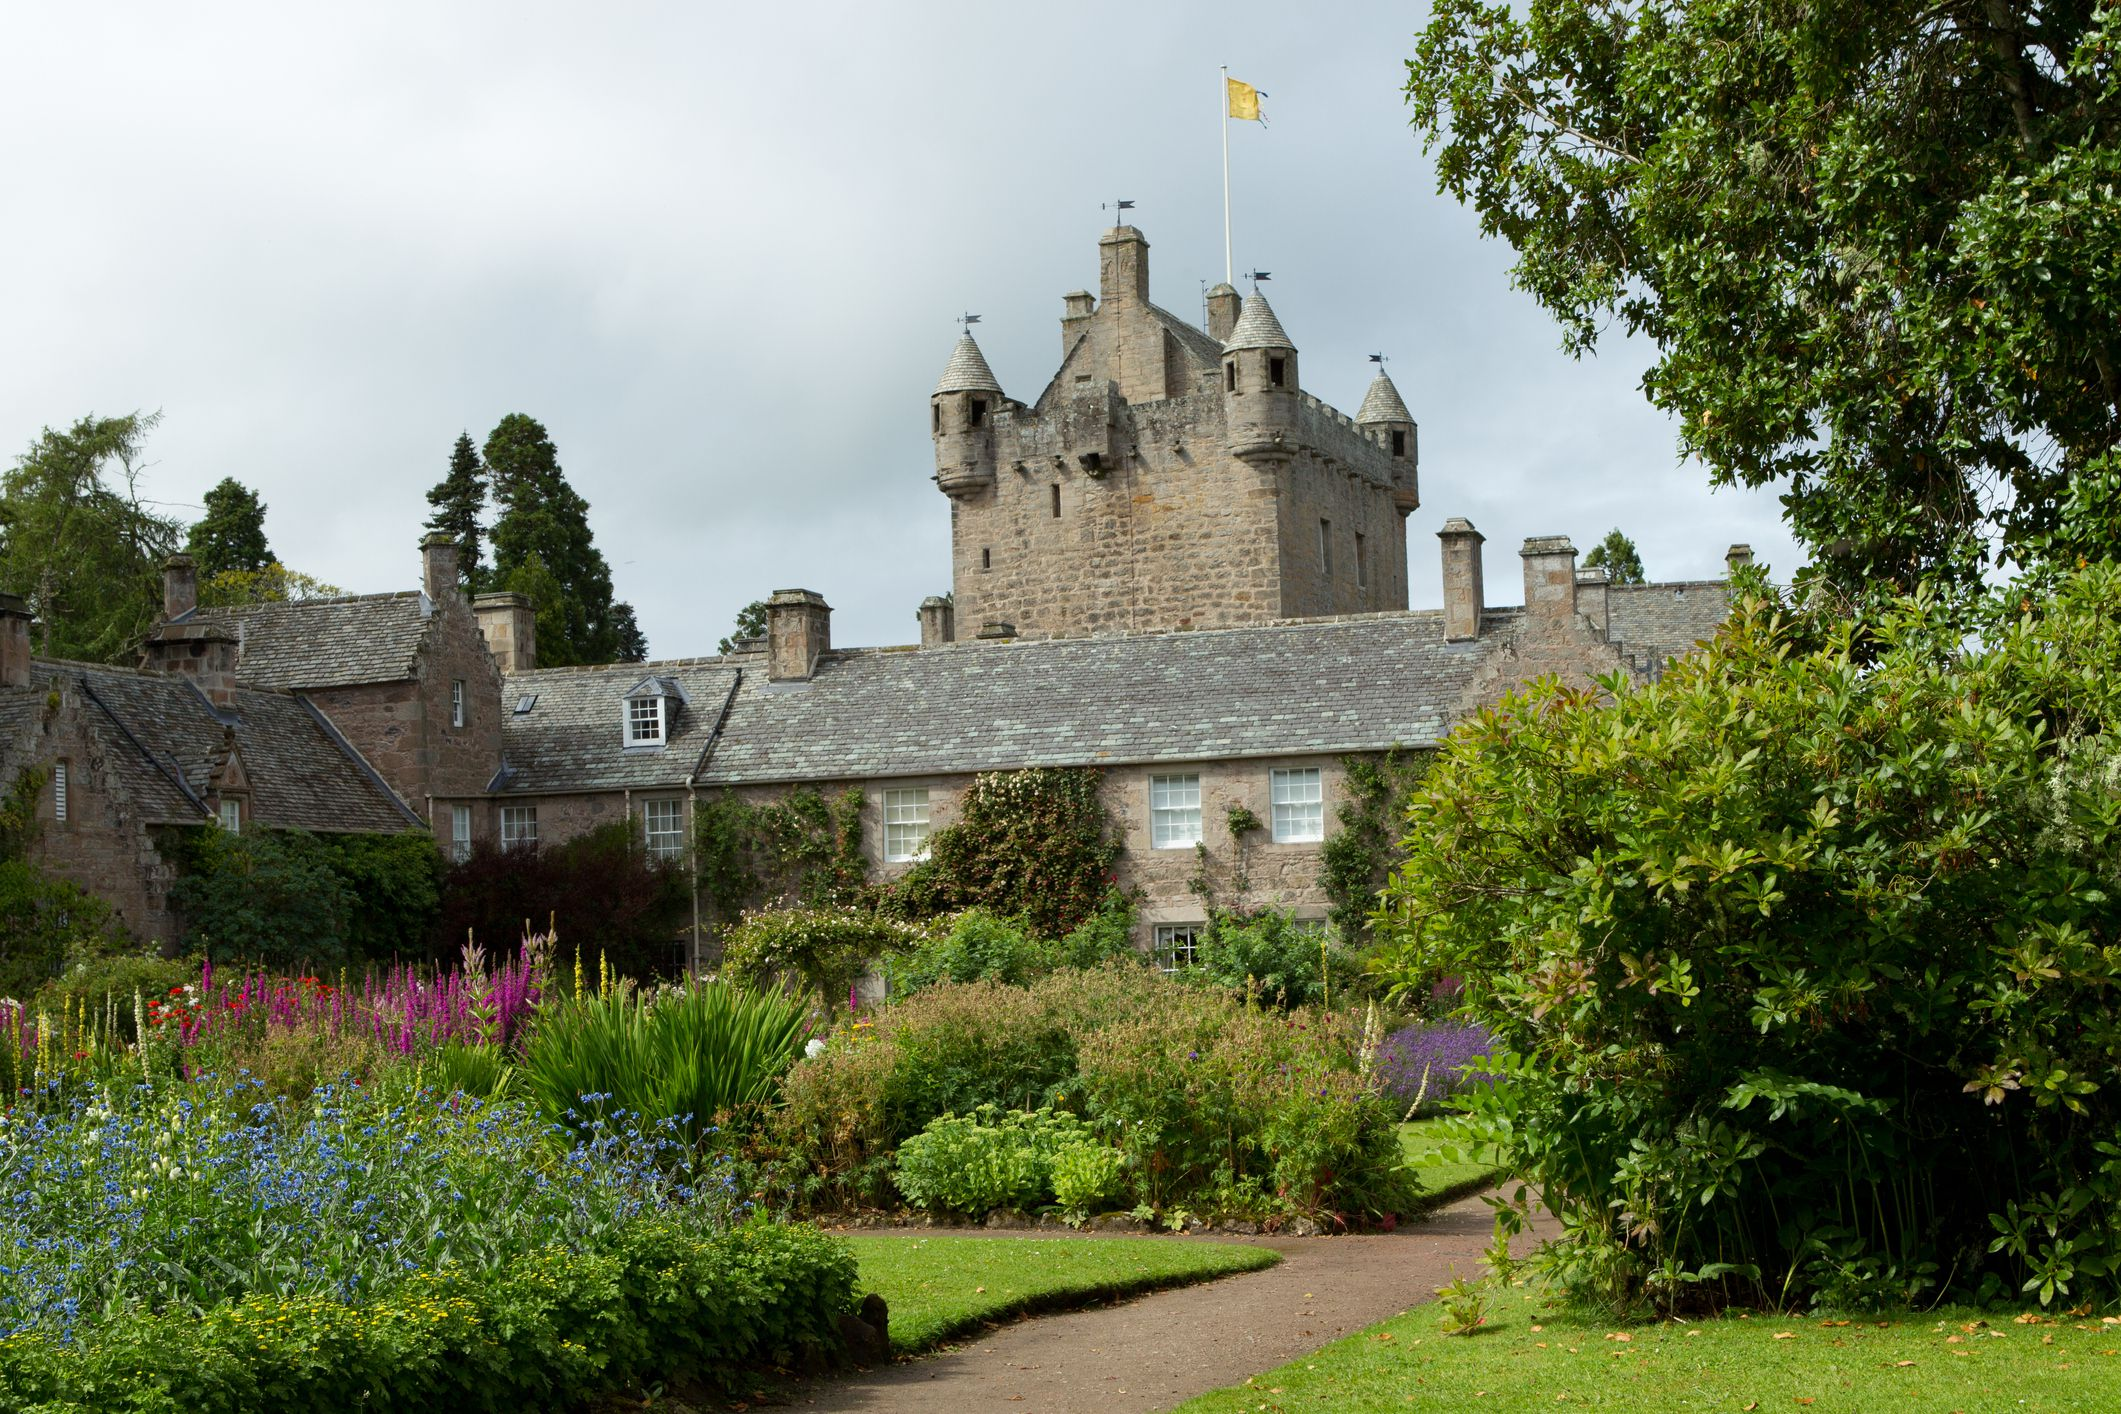 Fairytale castle and gardens found at Cawdor Castle - famous for its links to Shakespear's 'Macbeth' and his portrayal of the murder of King Duncan.